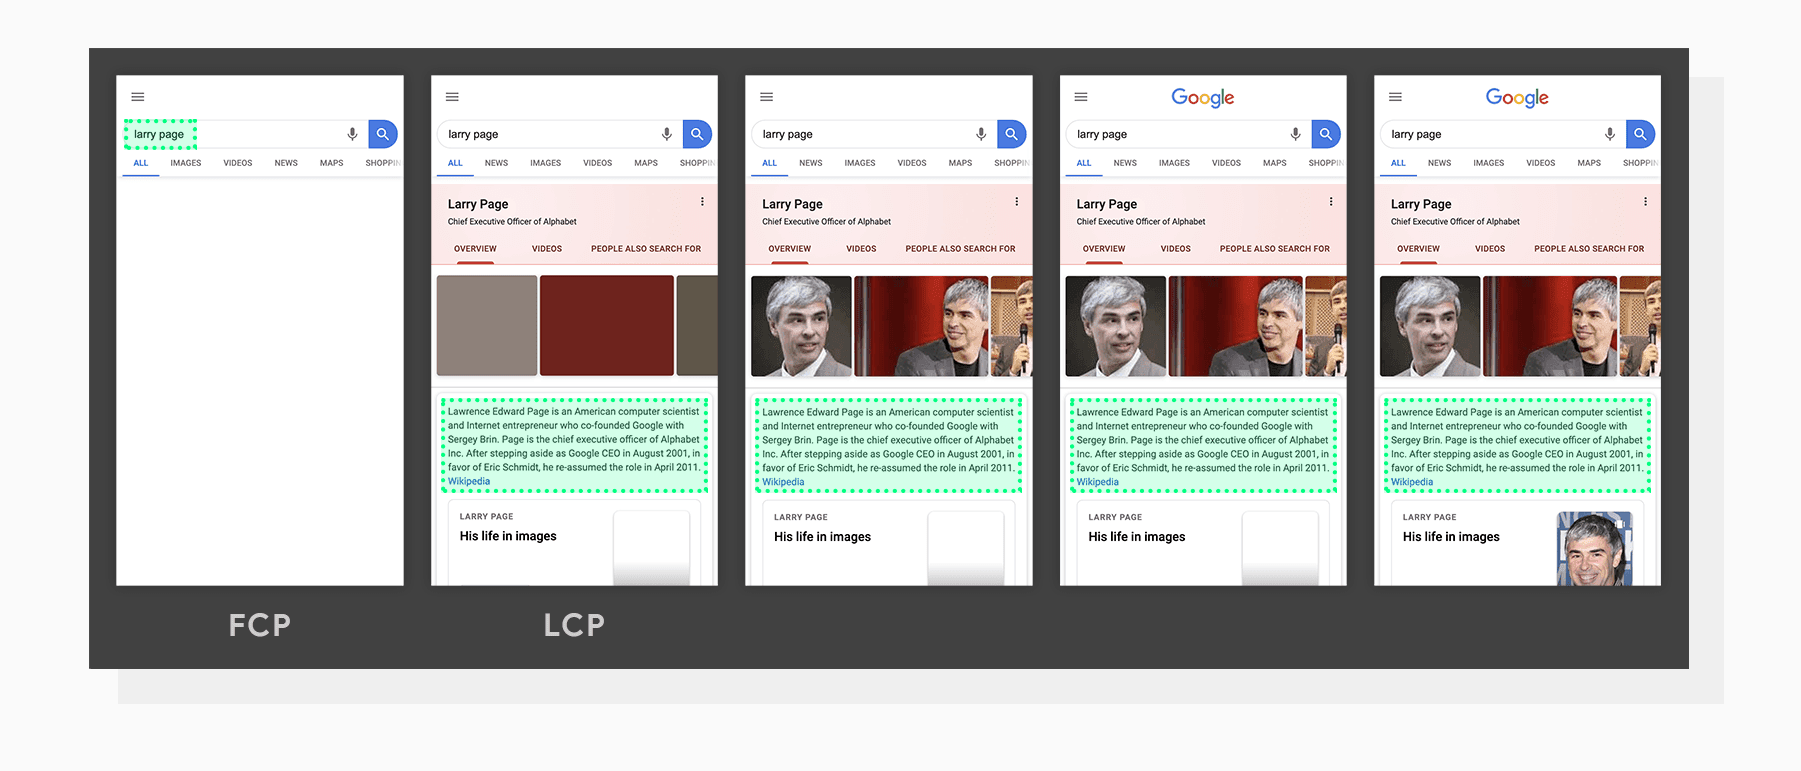 An example of LCP in Google mobile search